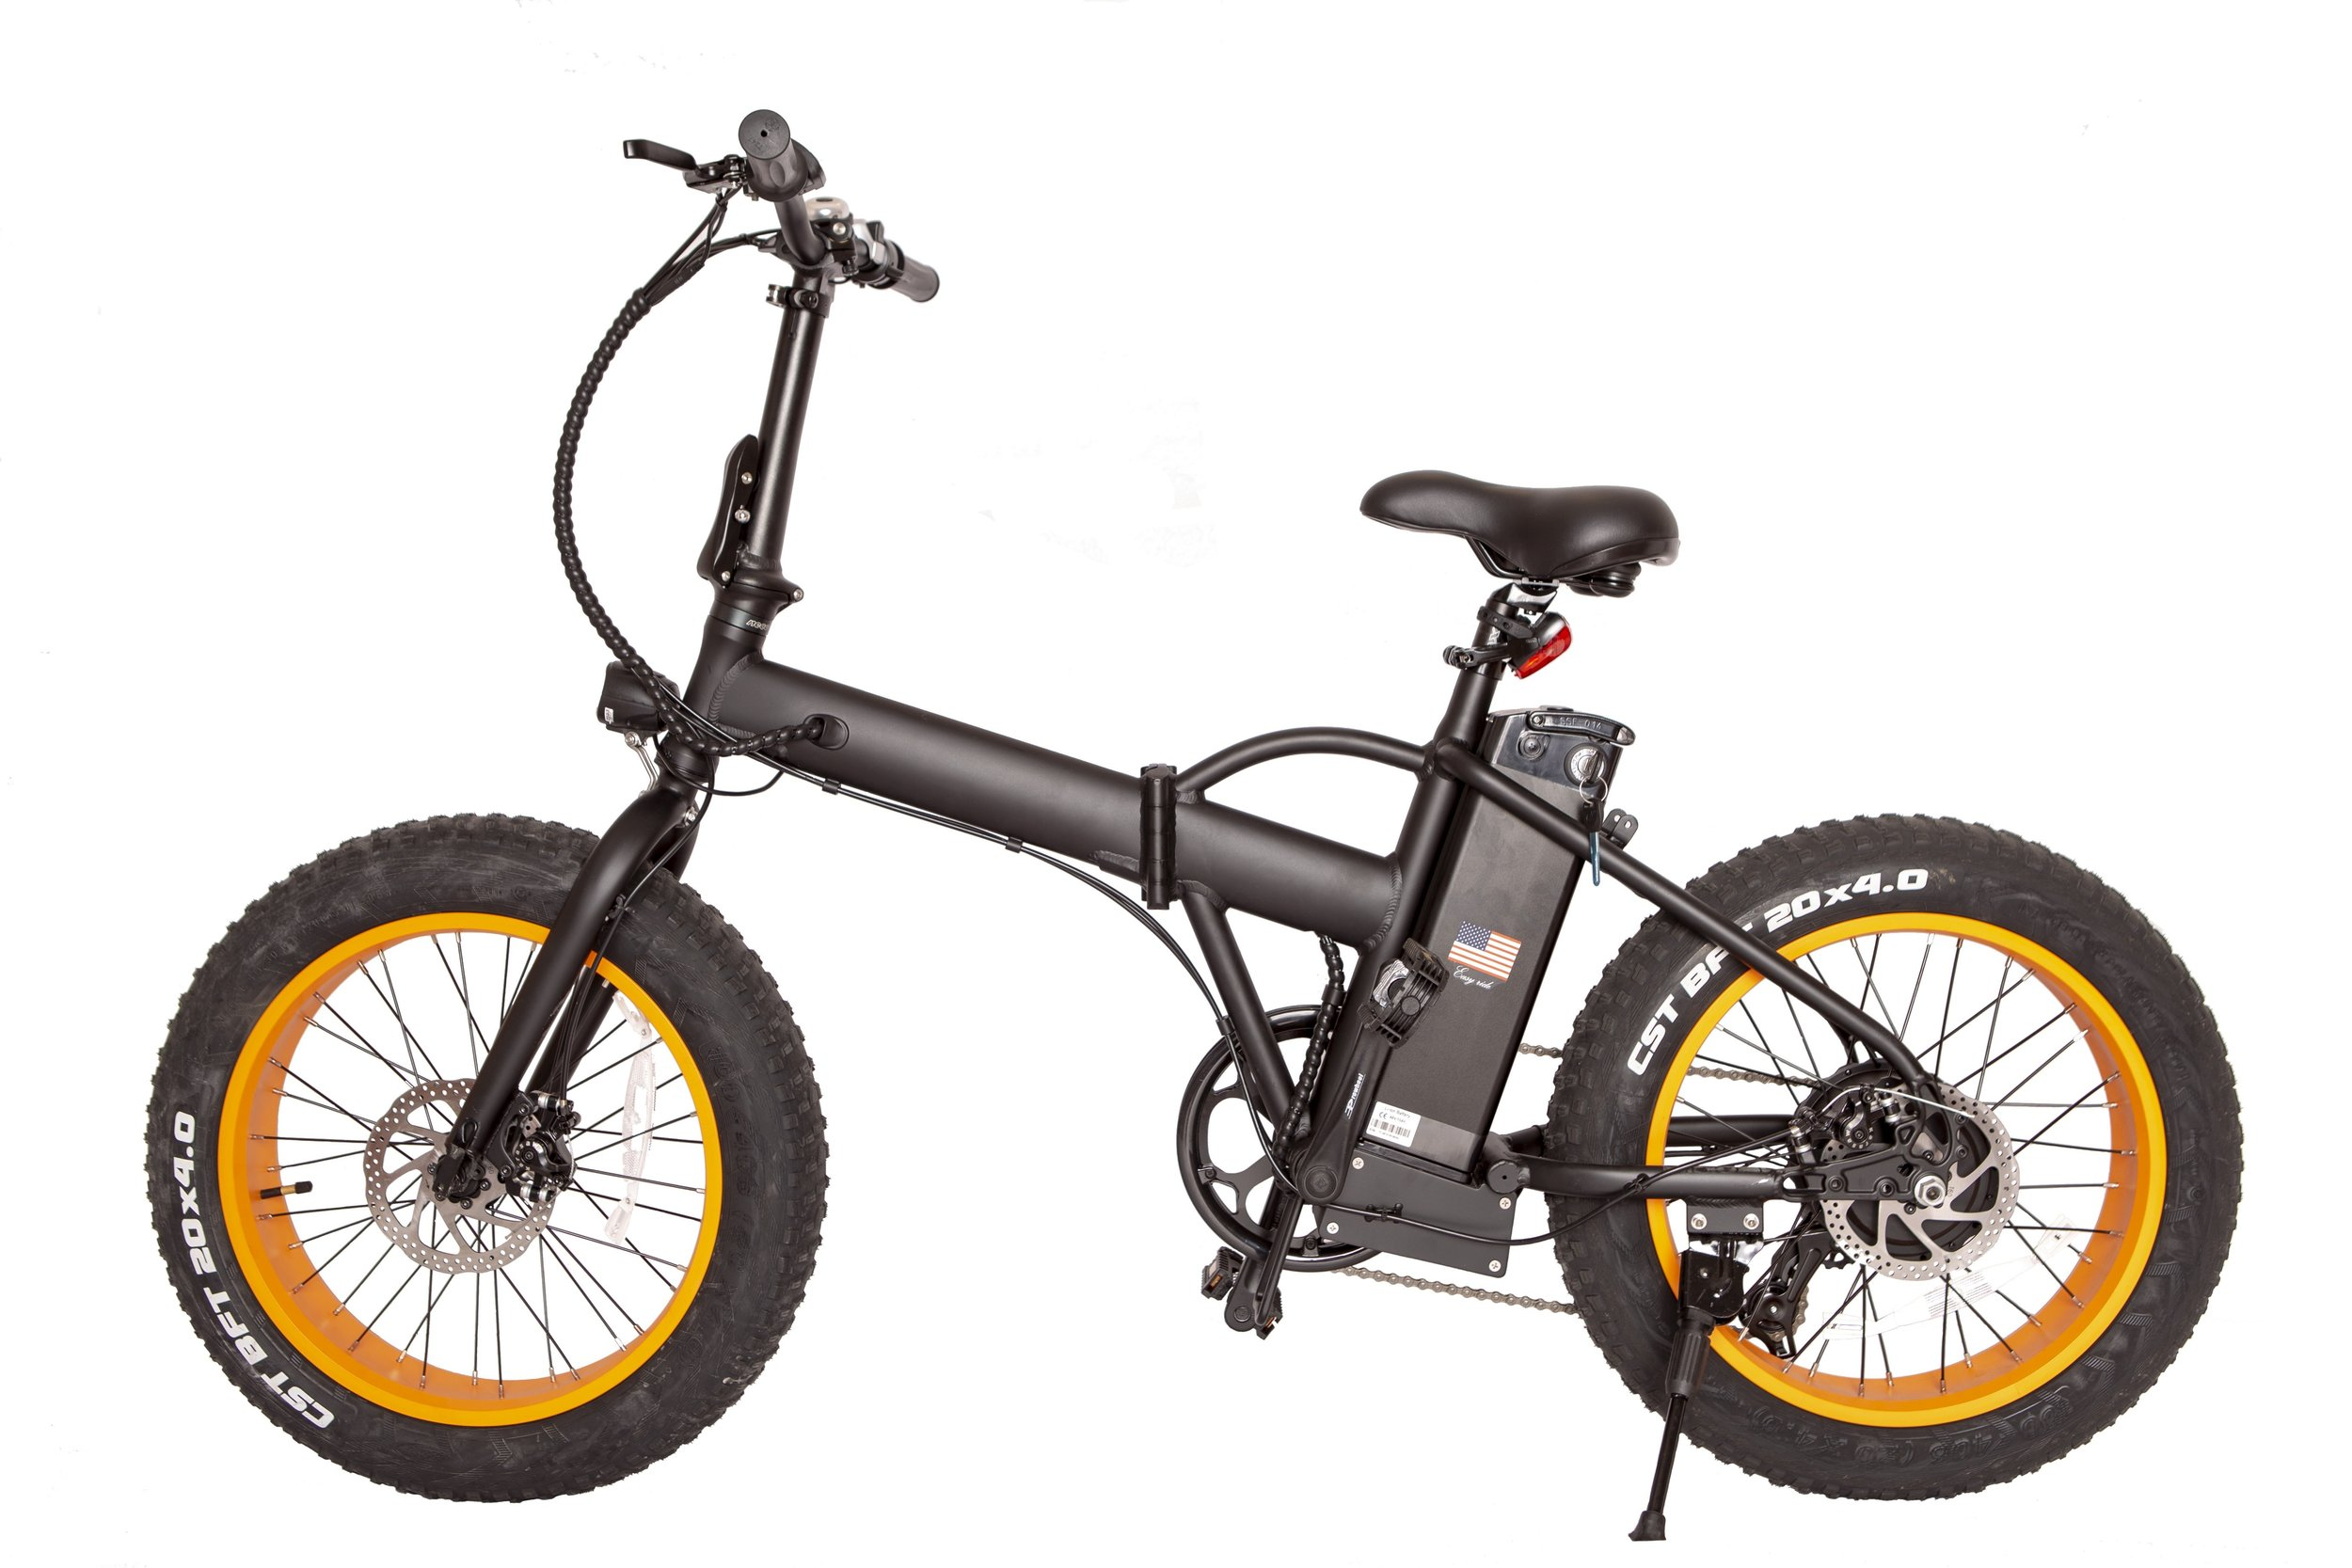 20″ Fat Tire Foldable eBike 48v Black/Gold $1599.99   Charging Time – 3-4 Hours Dual Disk Brakes Super Bright LED headlights Heavy Duty Alloy Frame and Fork Max Speed – 25-28mph Comes with Charger G.W. (LBS):72 N.W. (LBS):59 Weight Capacity: 295 LBS Tire: 26″48″ Fat Tire